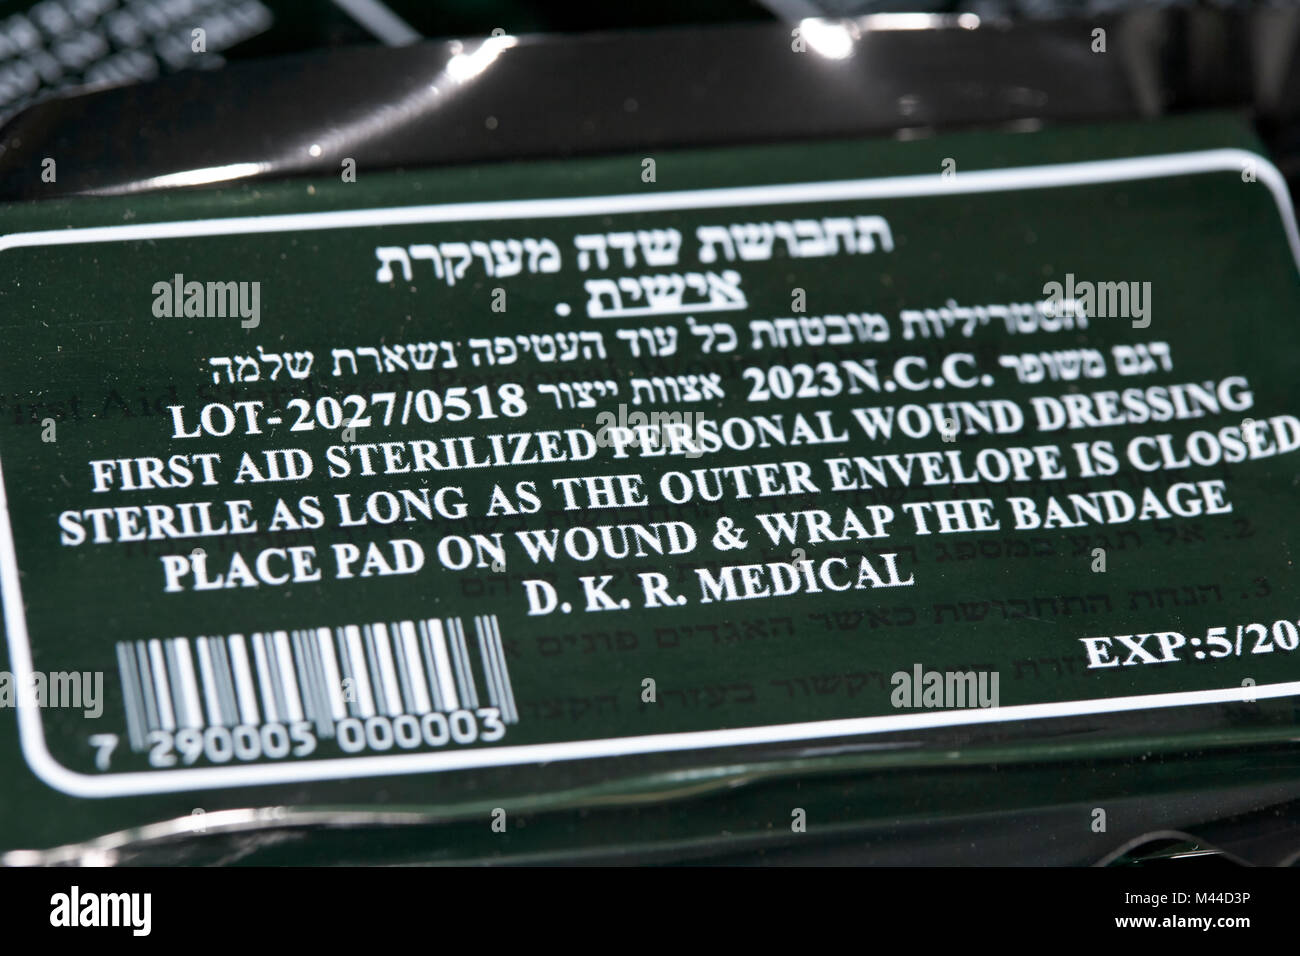 Israeli bandage emergency bandage used to stop bleeding from haemorrhagic wounds in traumatic injuries usually battlefield - Stock Image